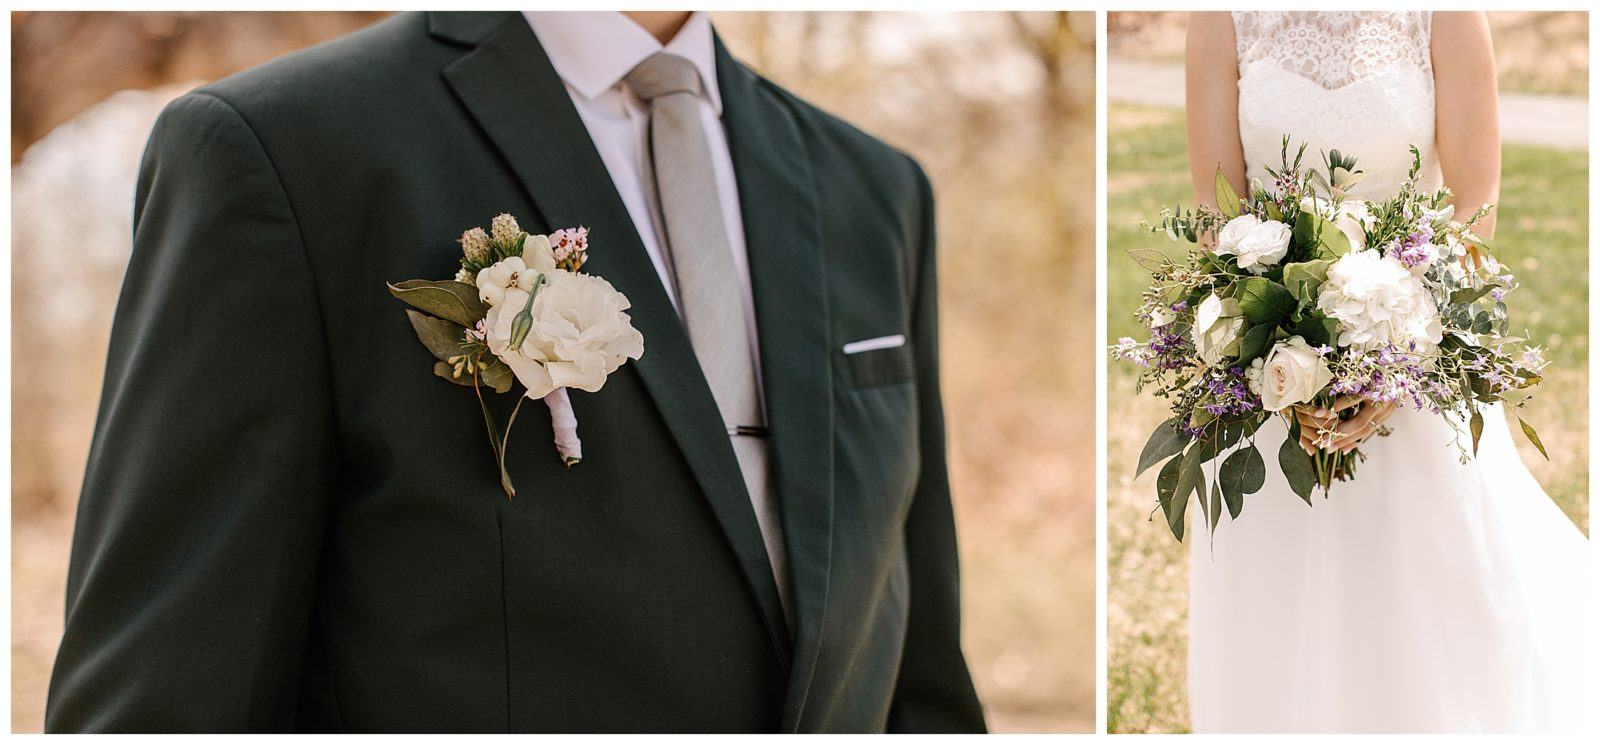 Silverwood Park wedding | May 4th wedding | Tigerlily Photography | Sixpence Events and Planning day of coordinating | green groom's suit